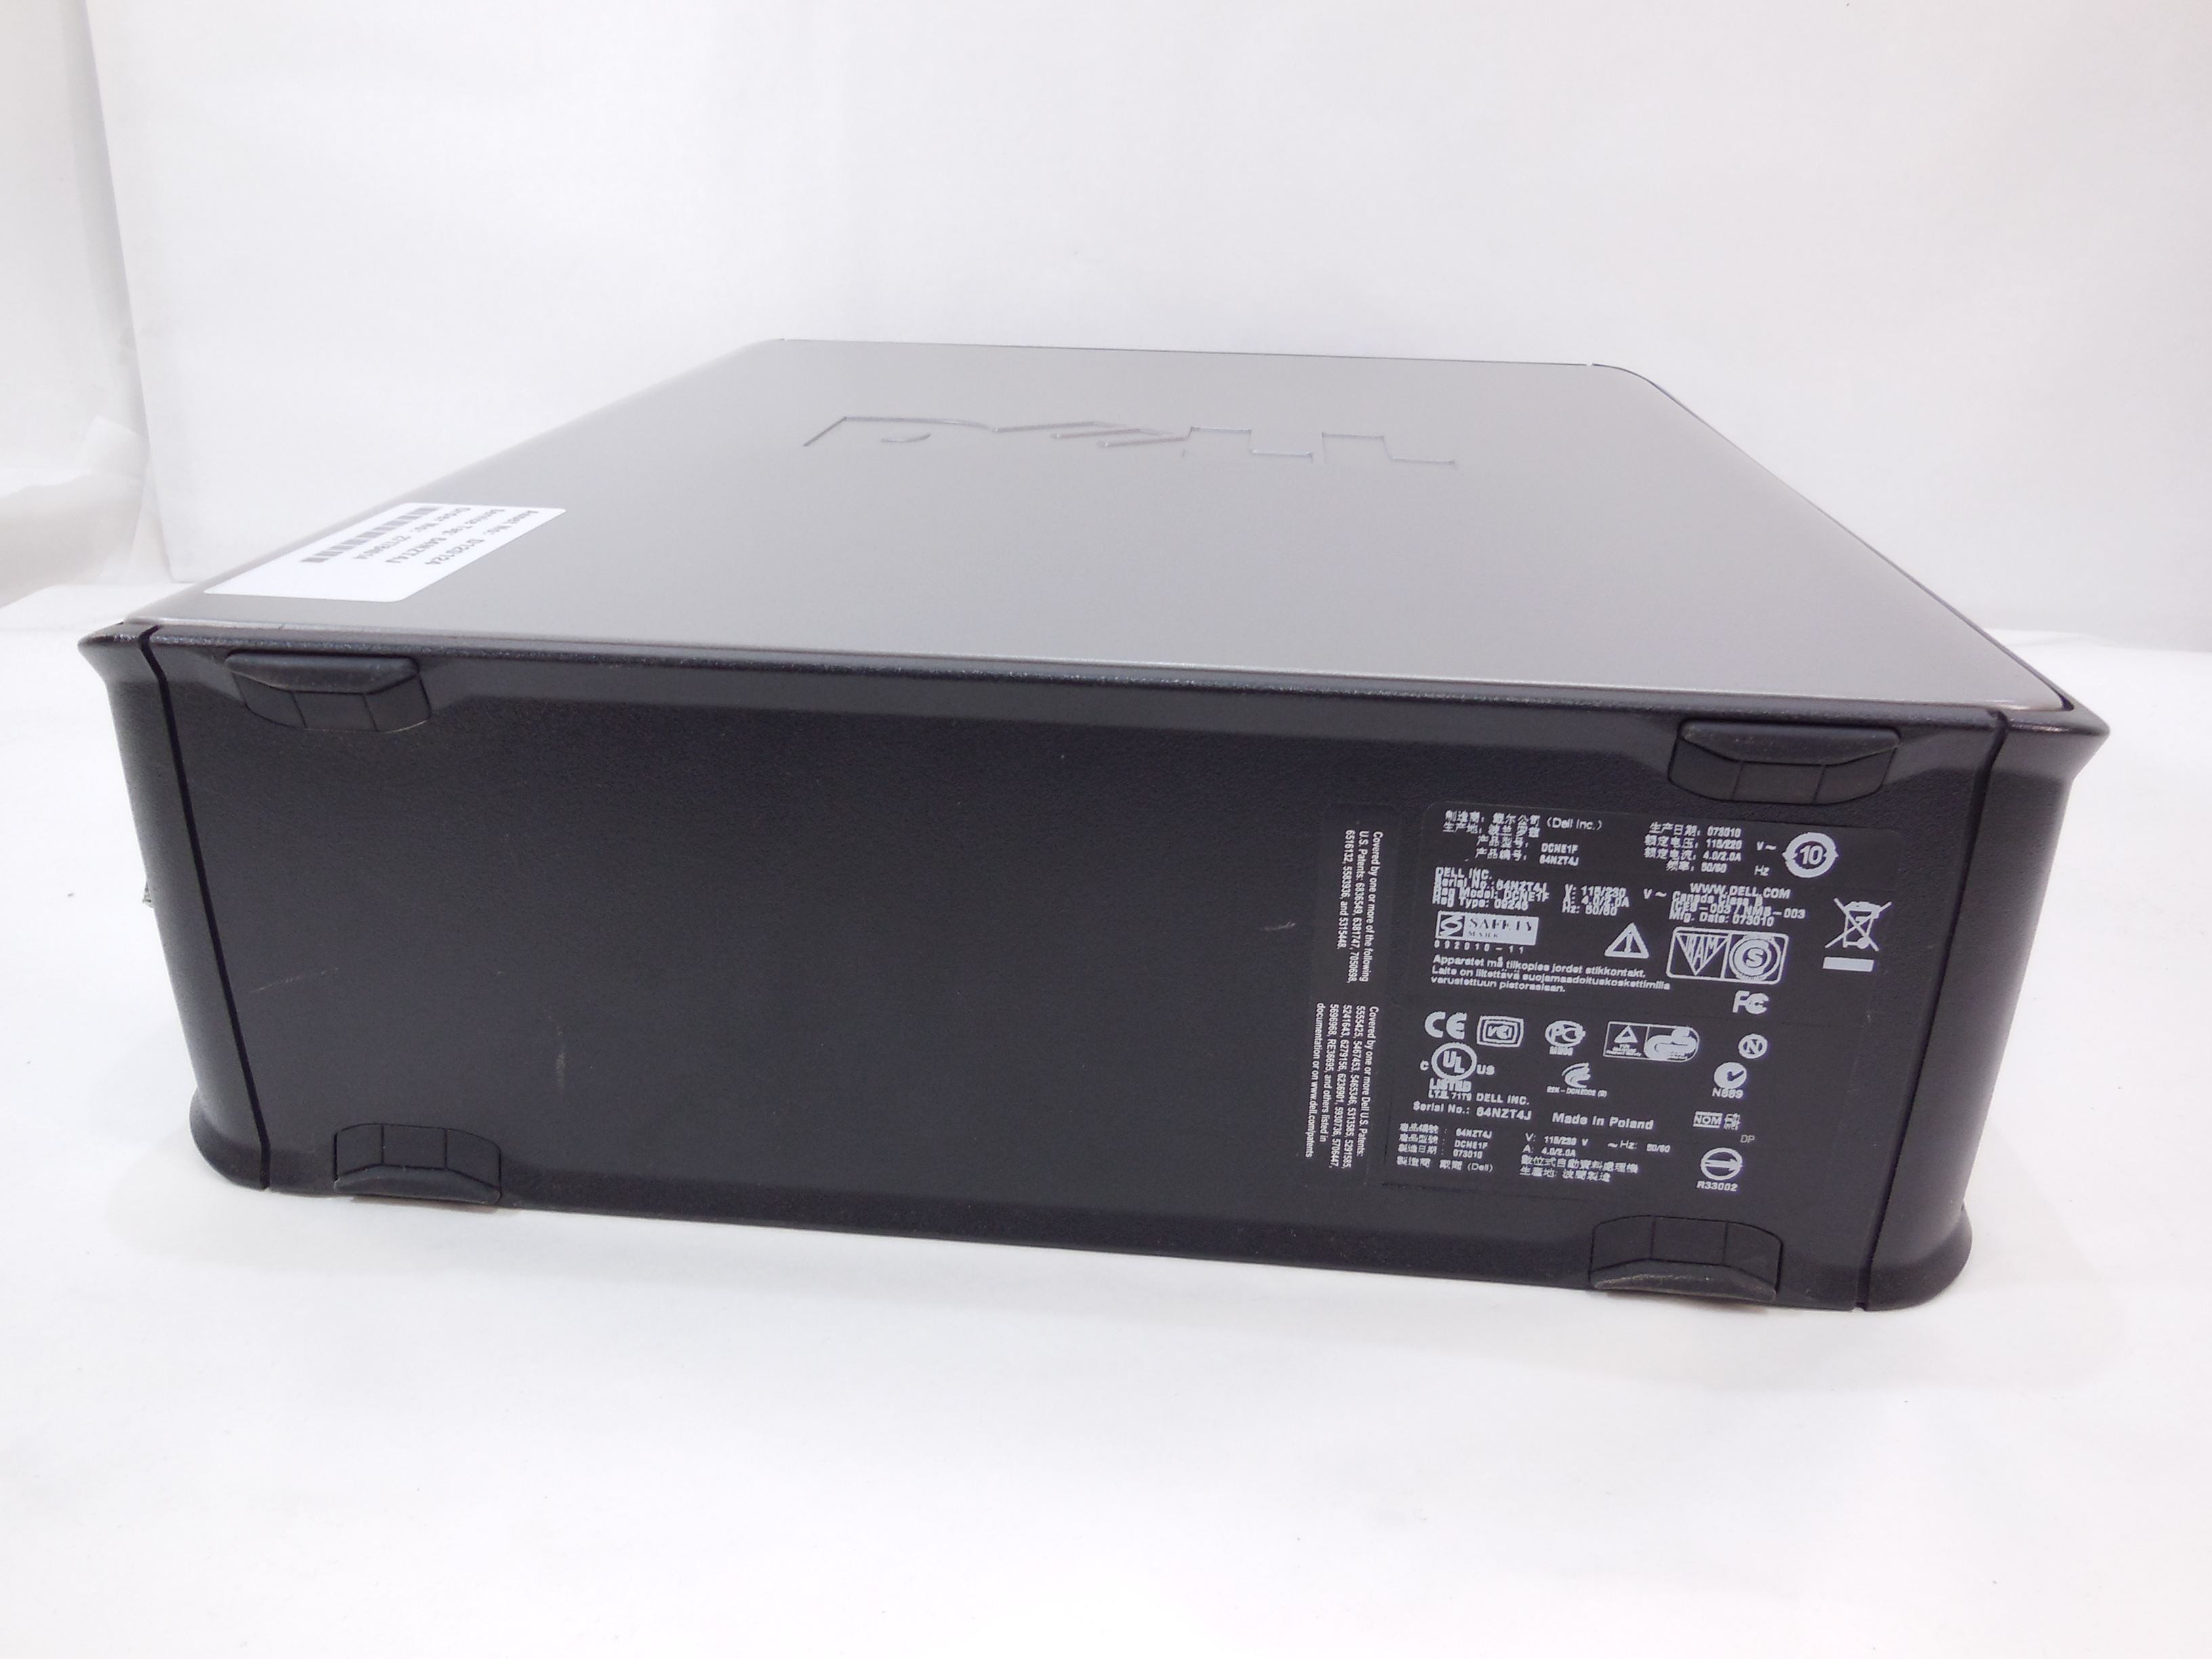 Комп. Dell Optiplex 780 Core 2 Duo E8400 (3.0GHz) - Pic n 283226